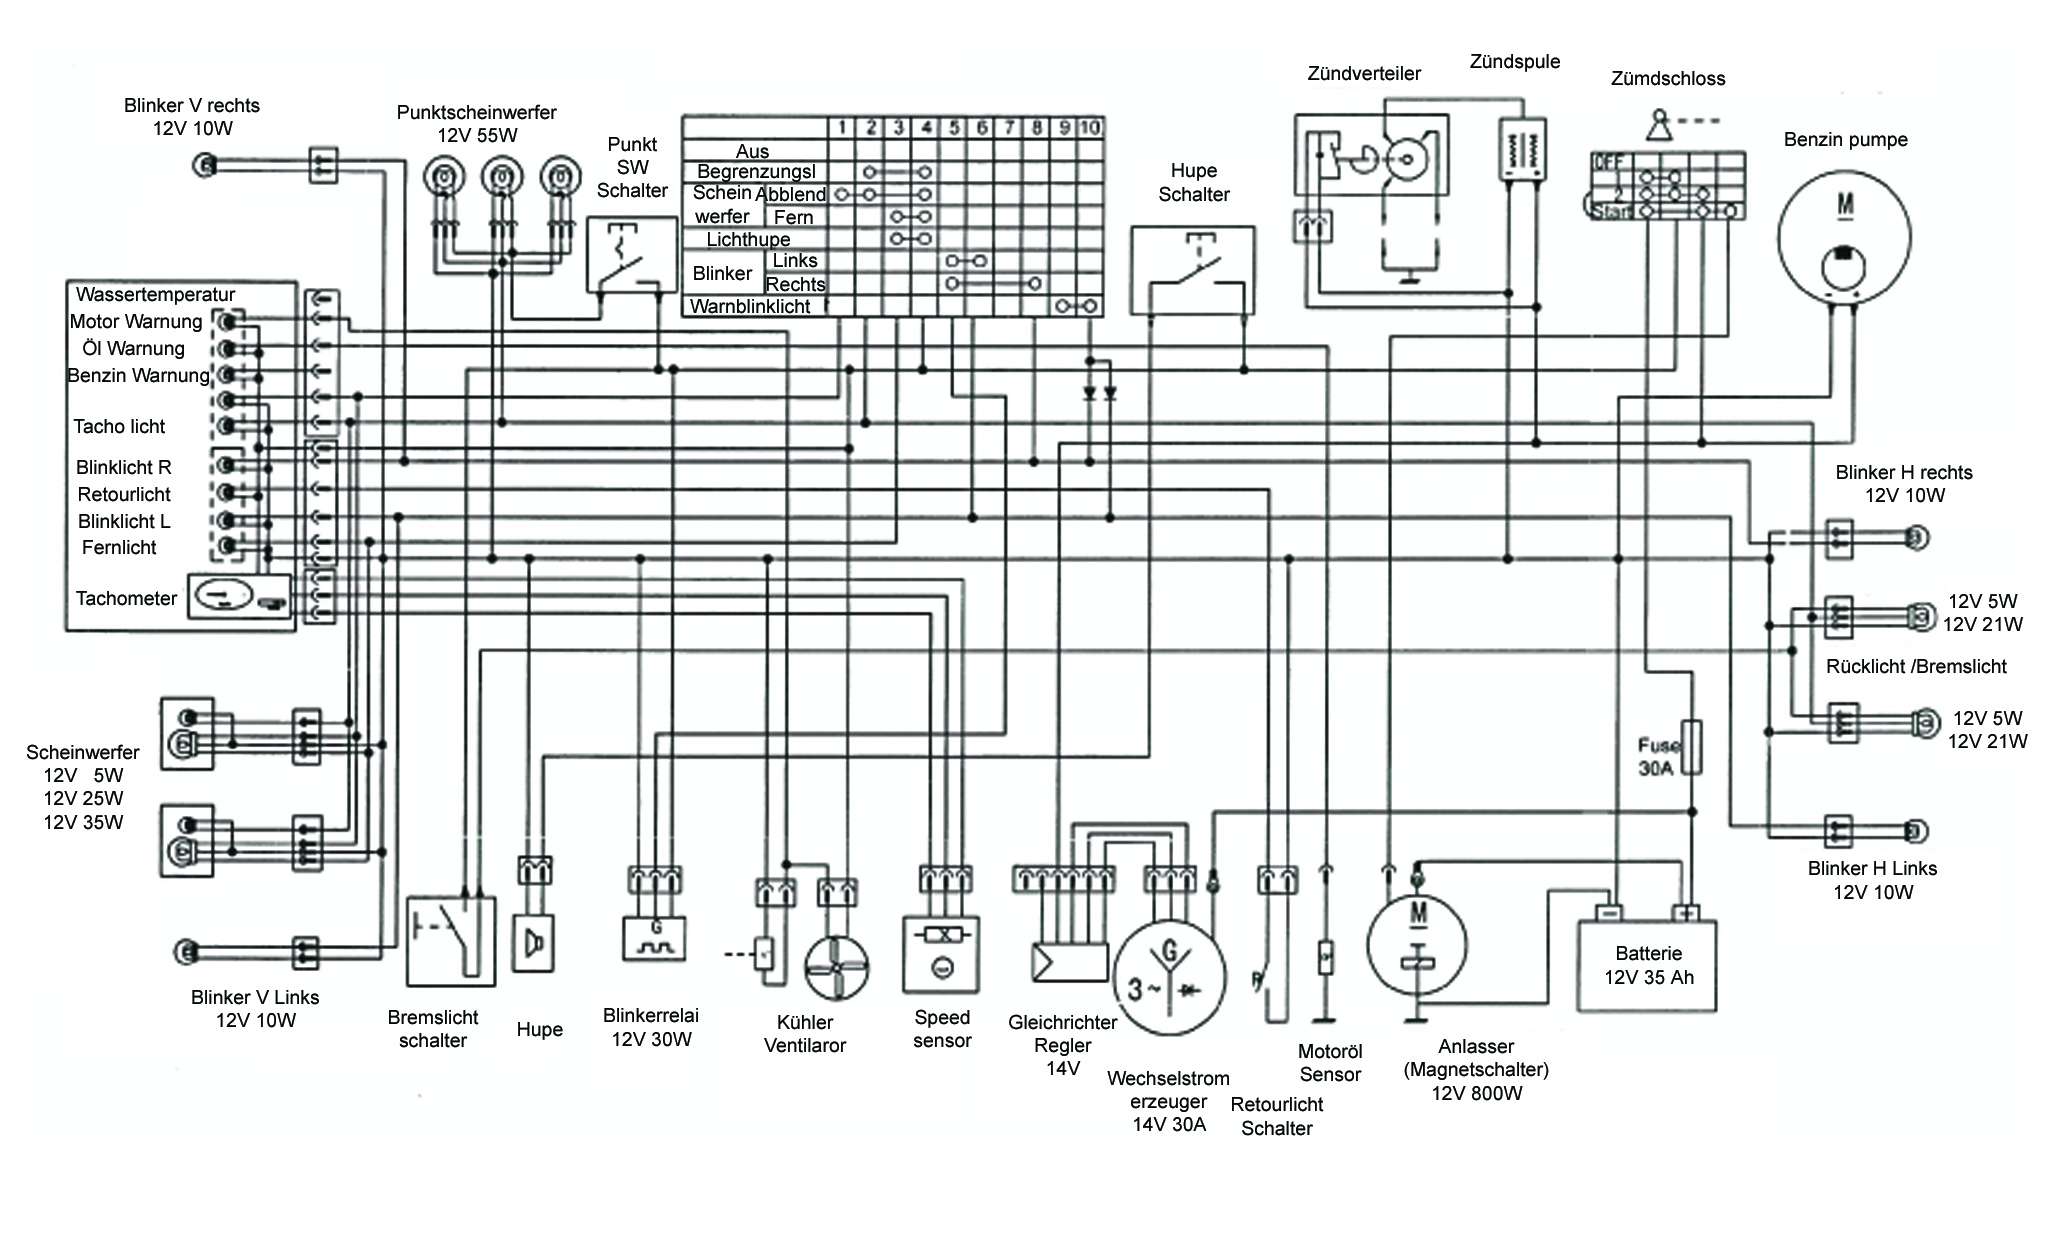 wiring diagram for 2013 kymco super 8 scooter on wiring